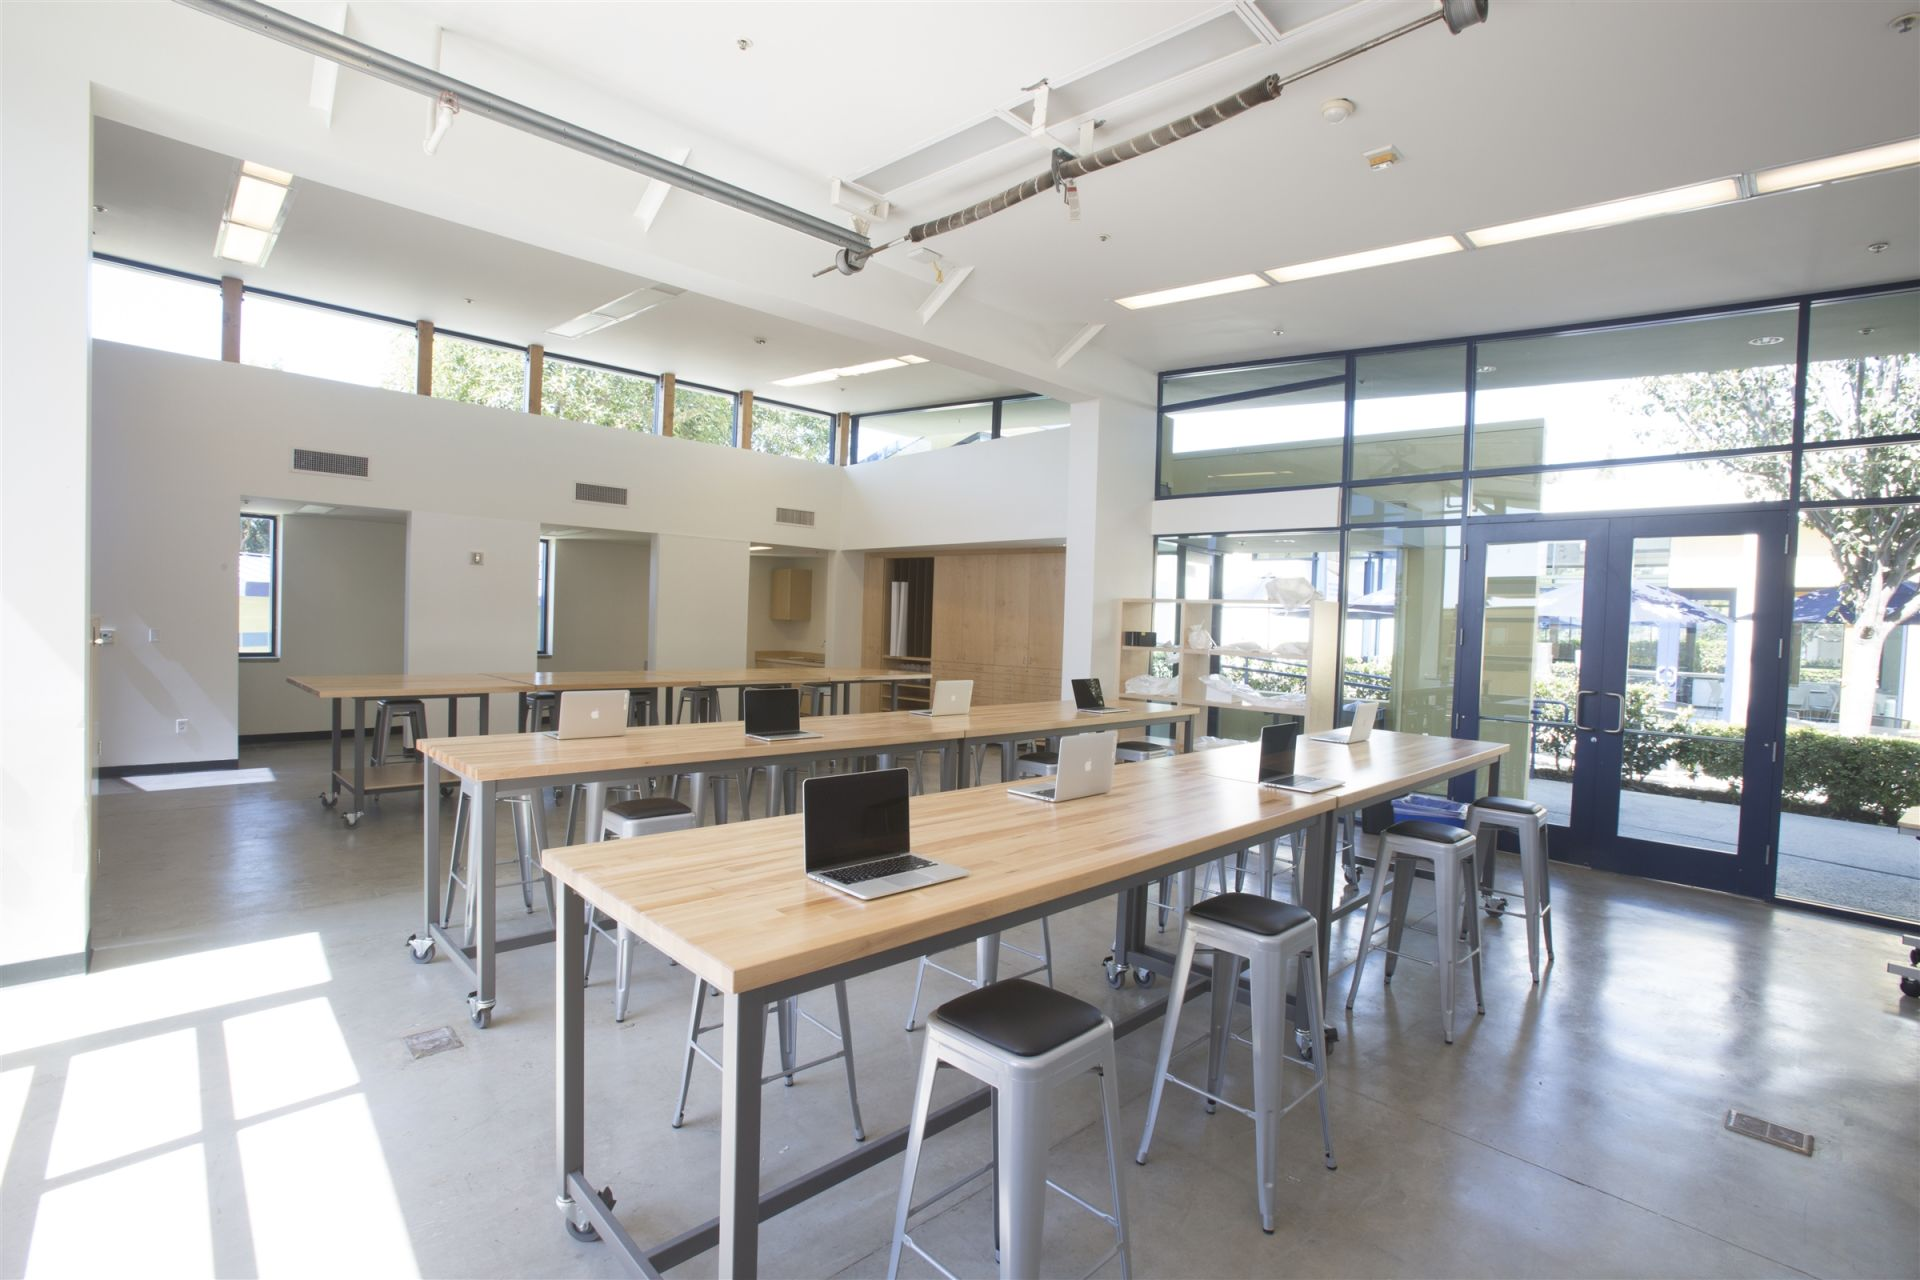 Design Studio Students Have Access To New Macbook Pro Laptops Enhance Both 2d And Curriculum Art